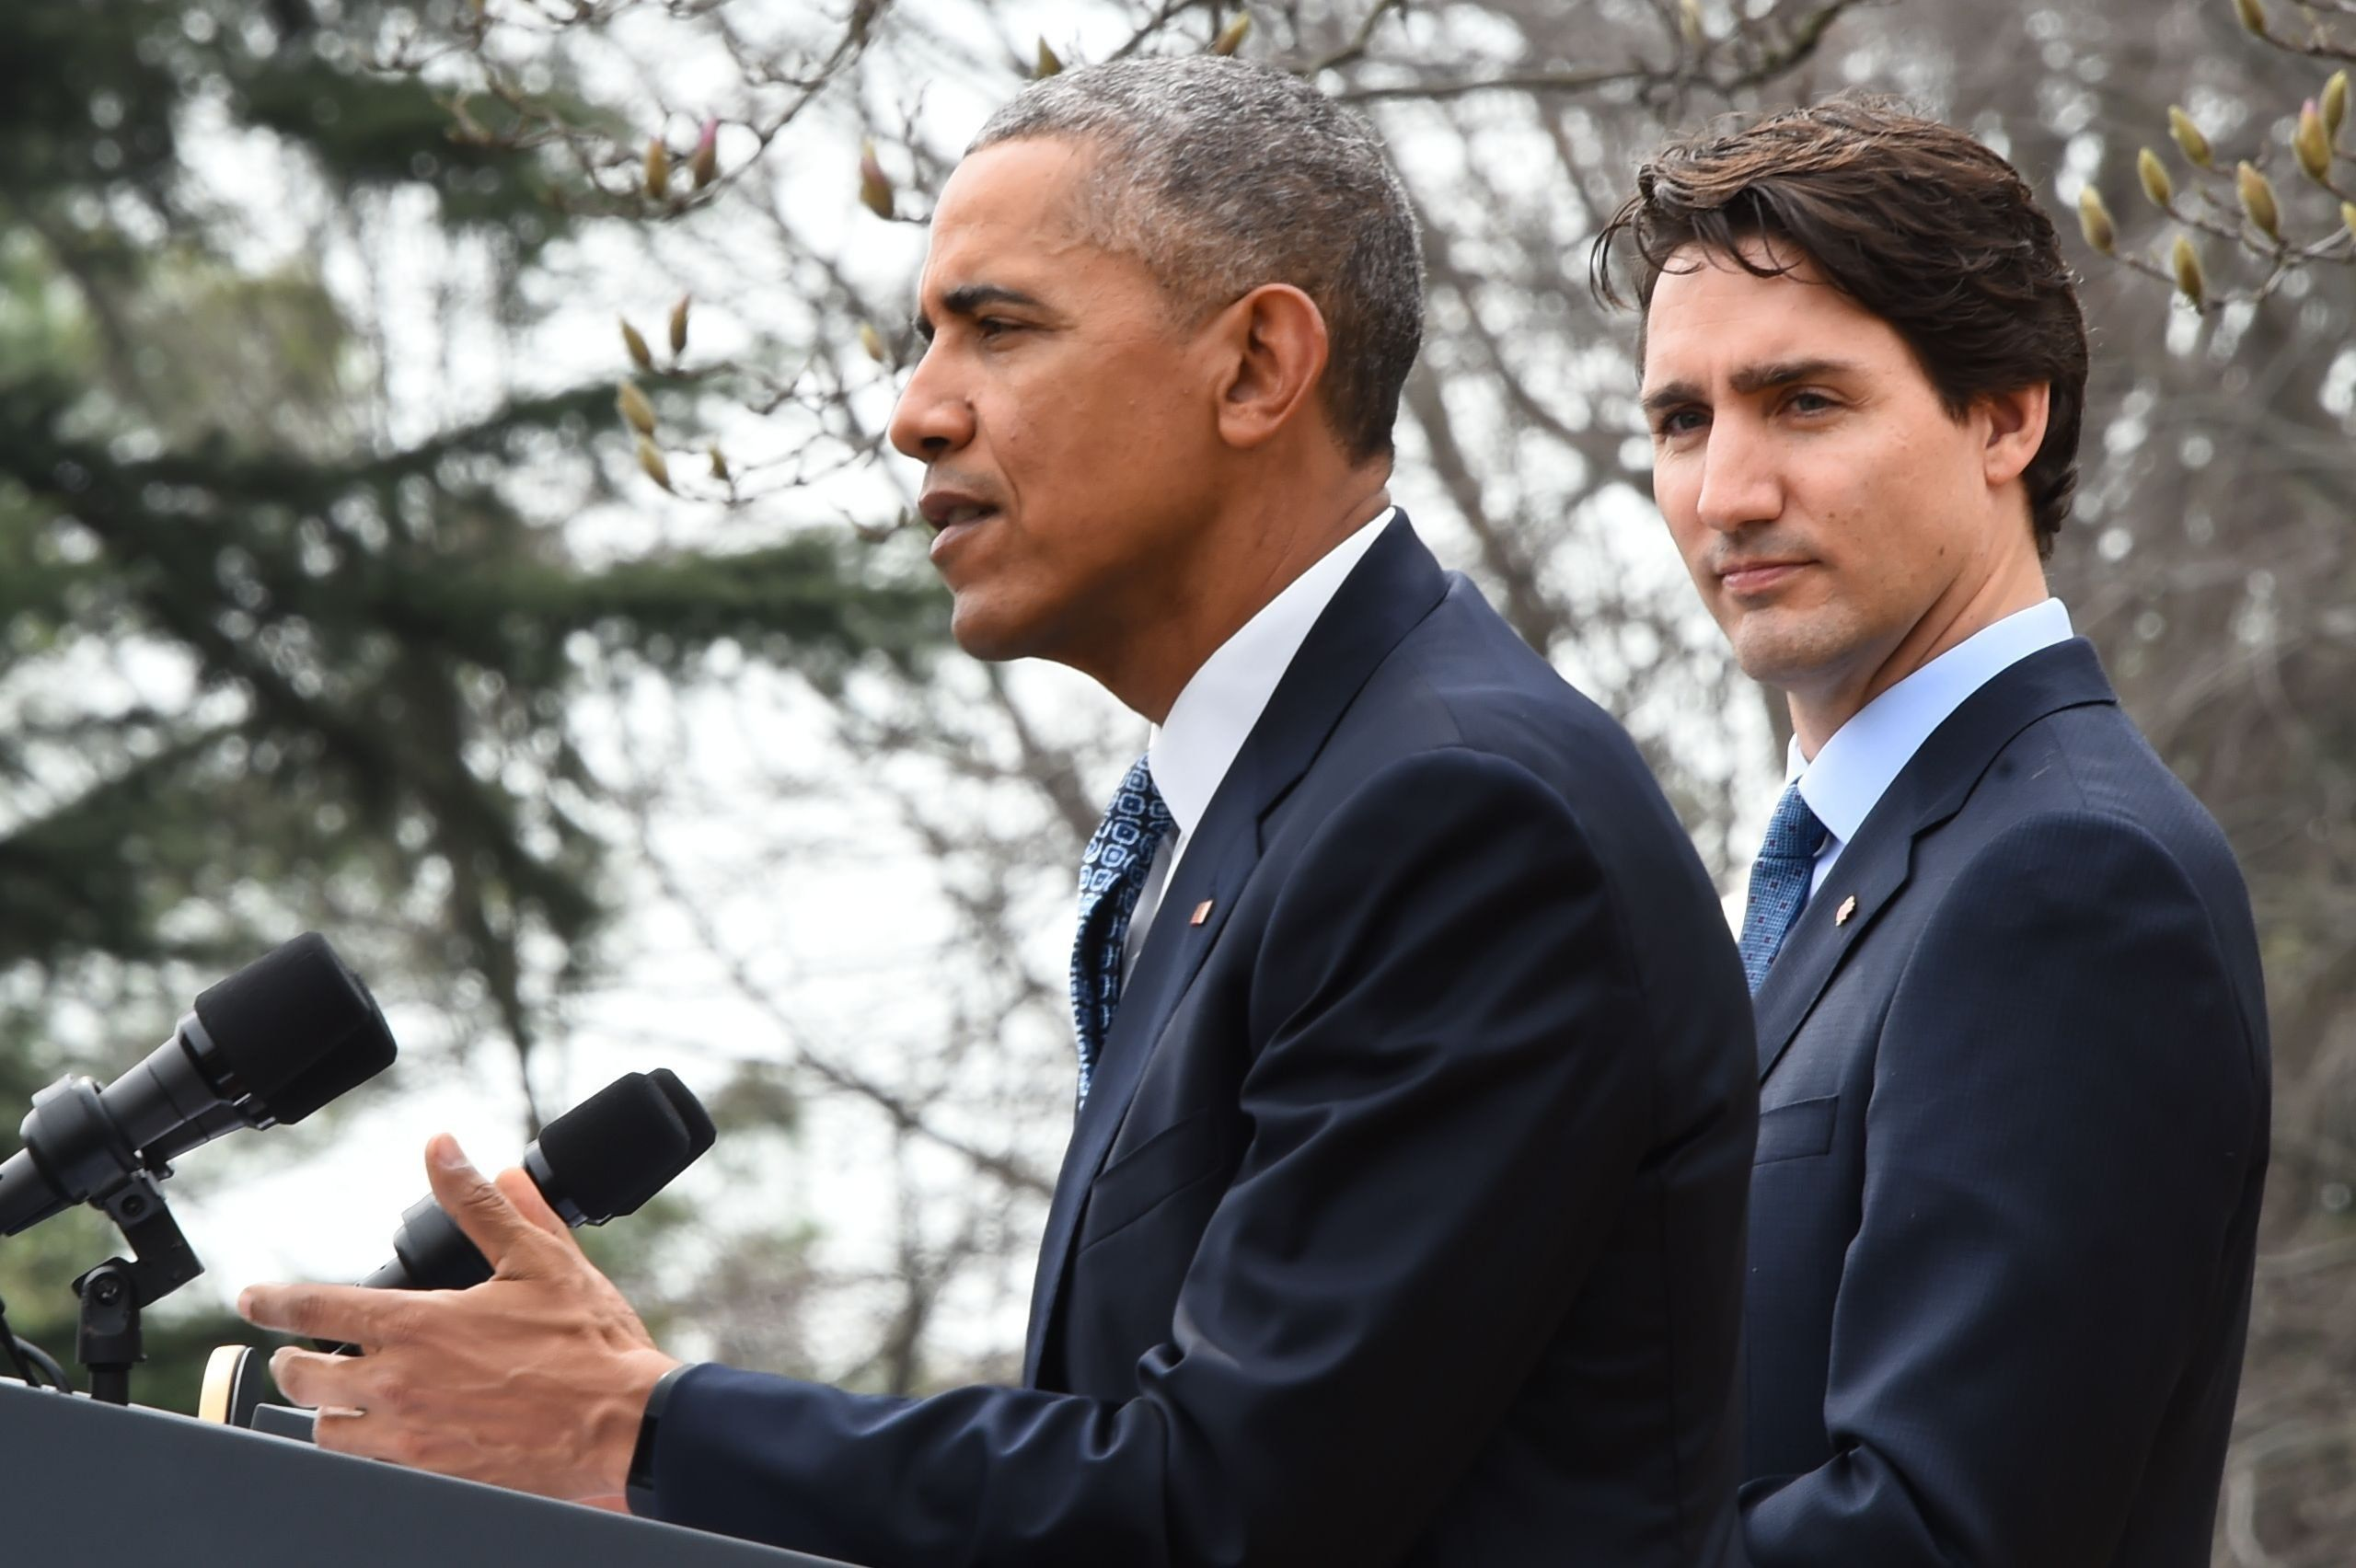 US President Barack Obama (R) and Canada's Prime Minister Justin Trudeau hold a press conference in the Rose Garden of the White  House on March 10, 2016 in Washington, DC. / AFP / Jim Watson        (Photo credit should read JIM WATSON/AFP/Getty Images)